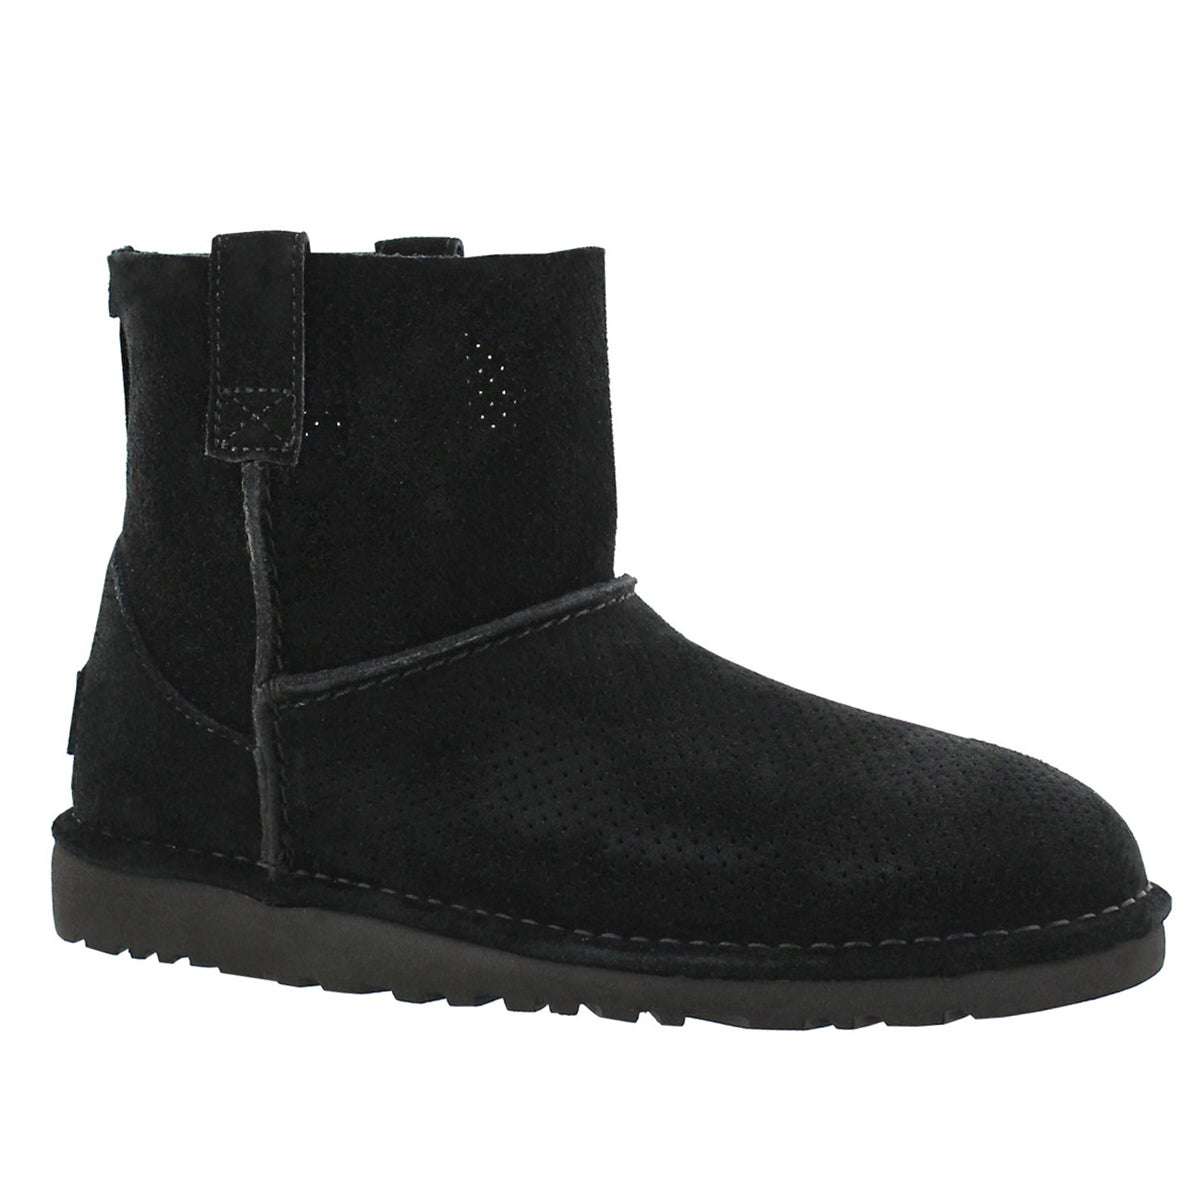 Lds Classic Unlined Mini Perf black boot